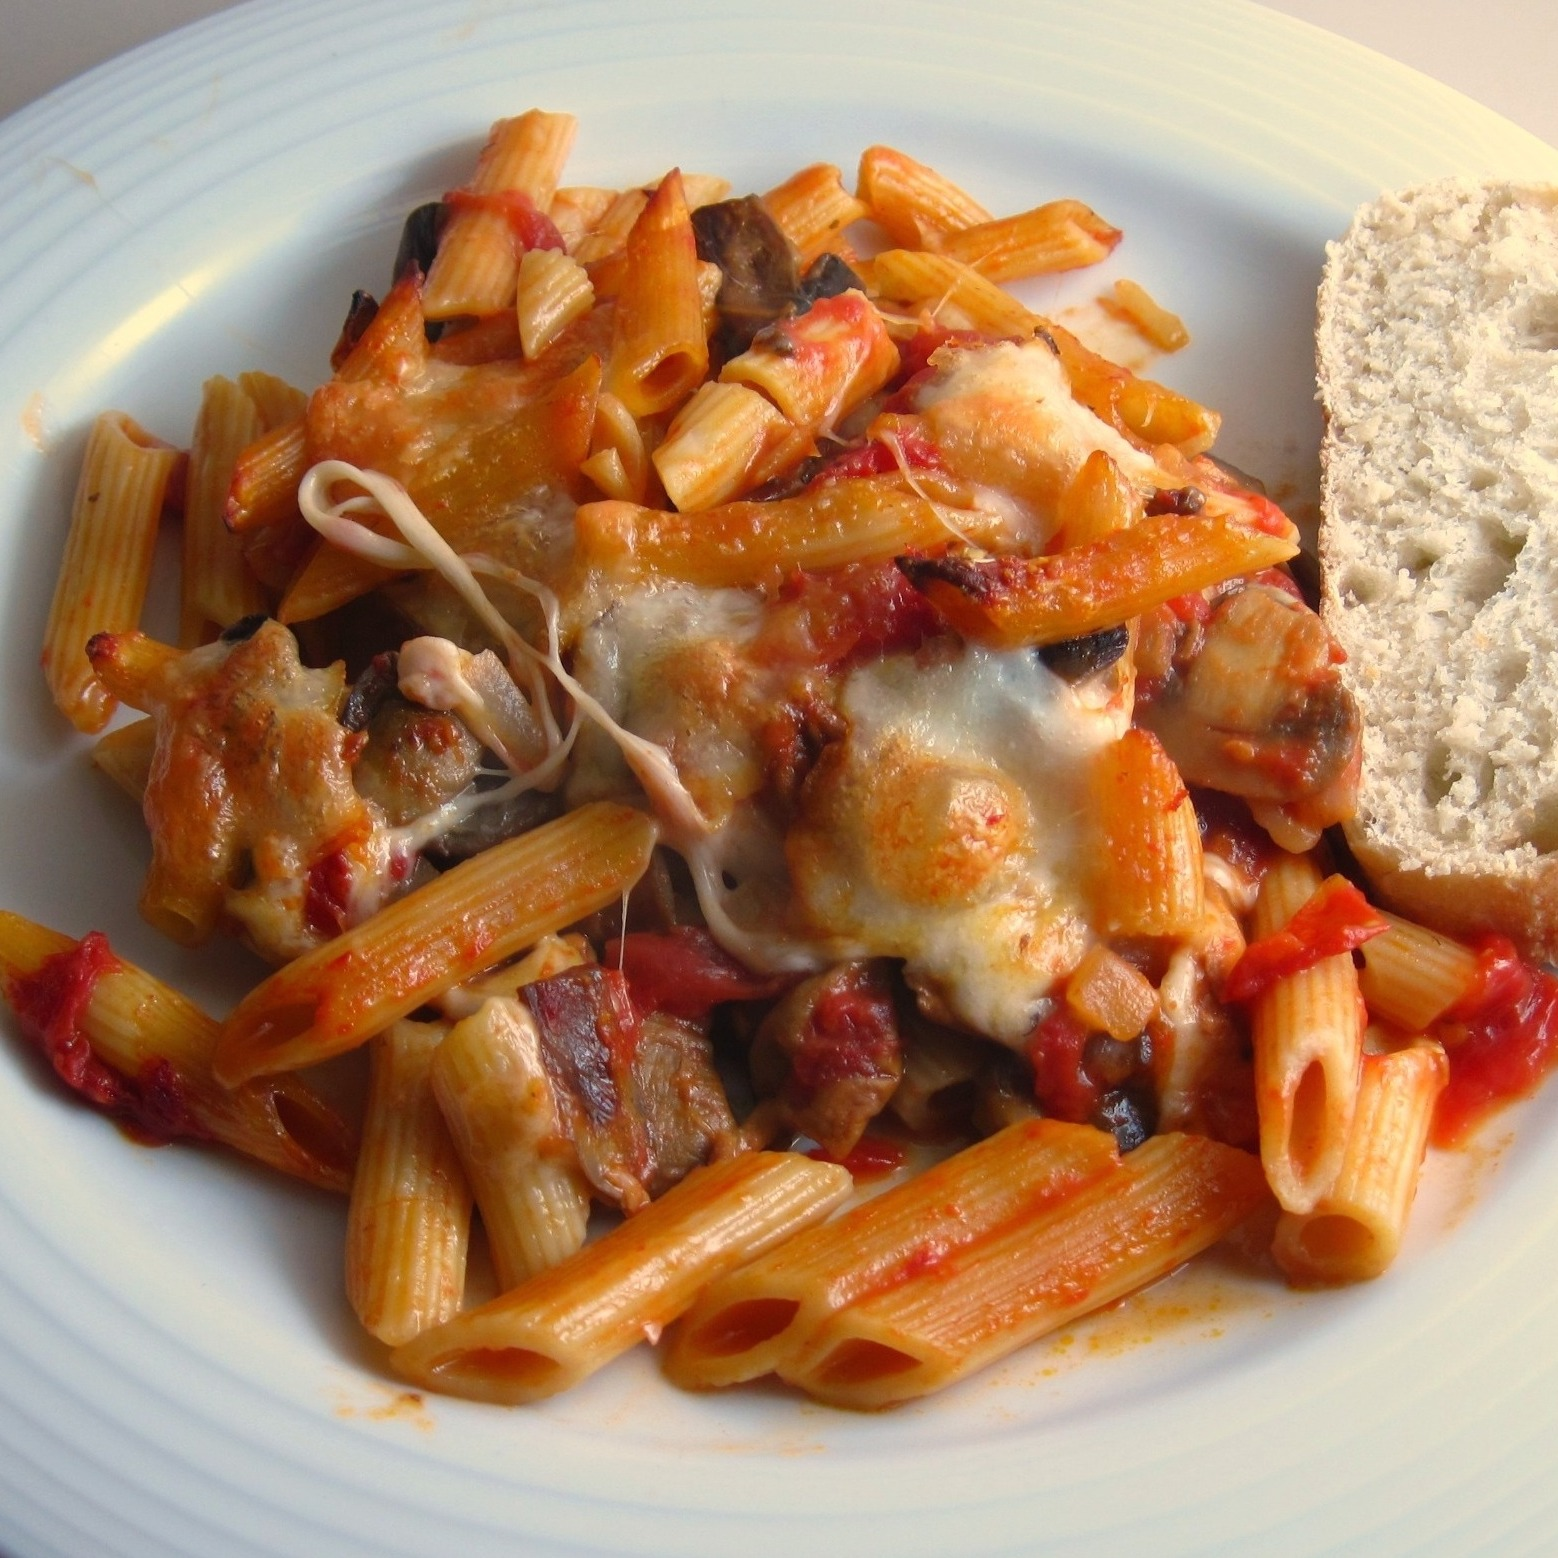 Baked Penne with Mushrooms and Mozzarella | In the kitchen with Kath